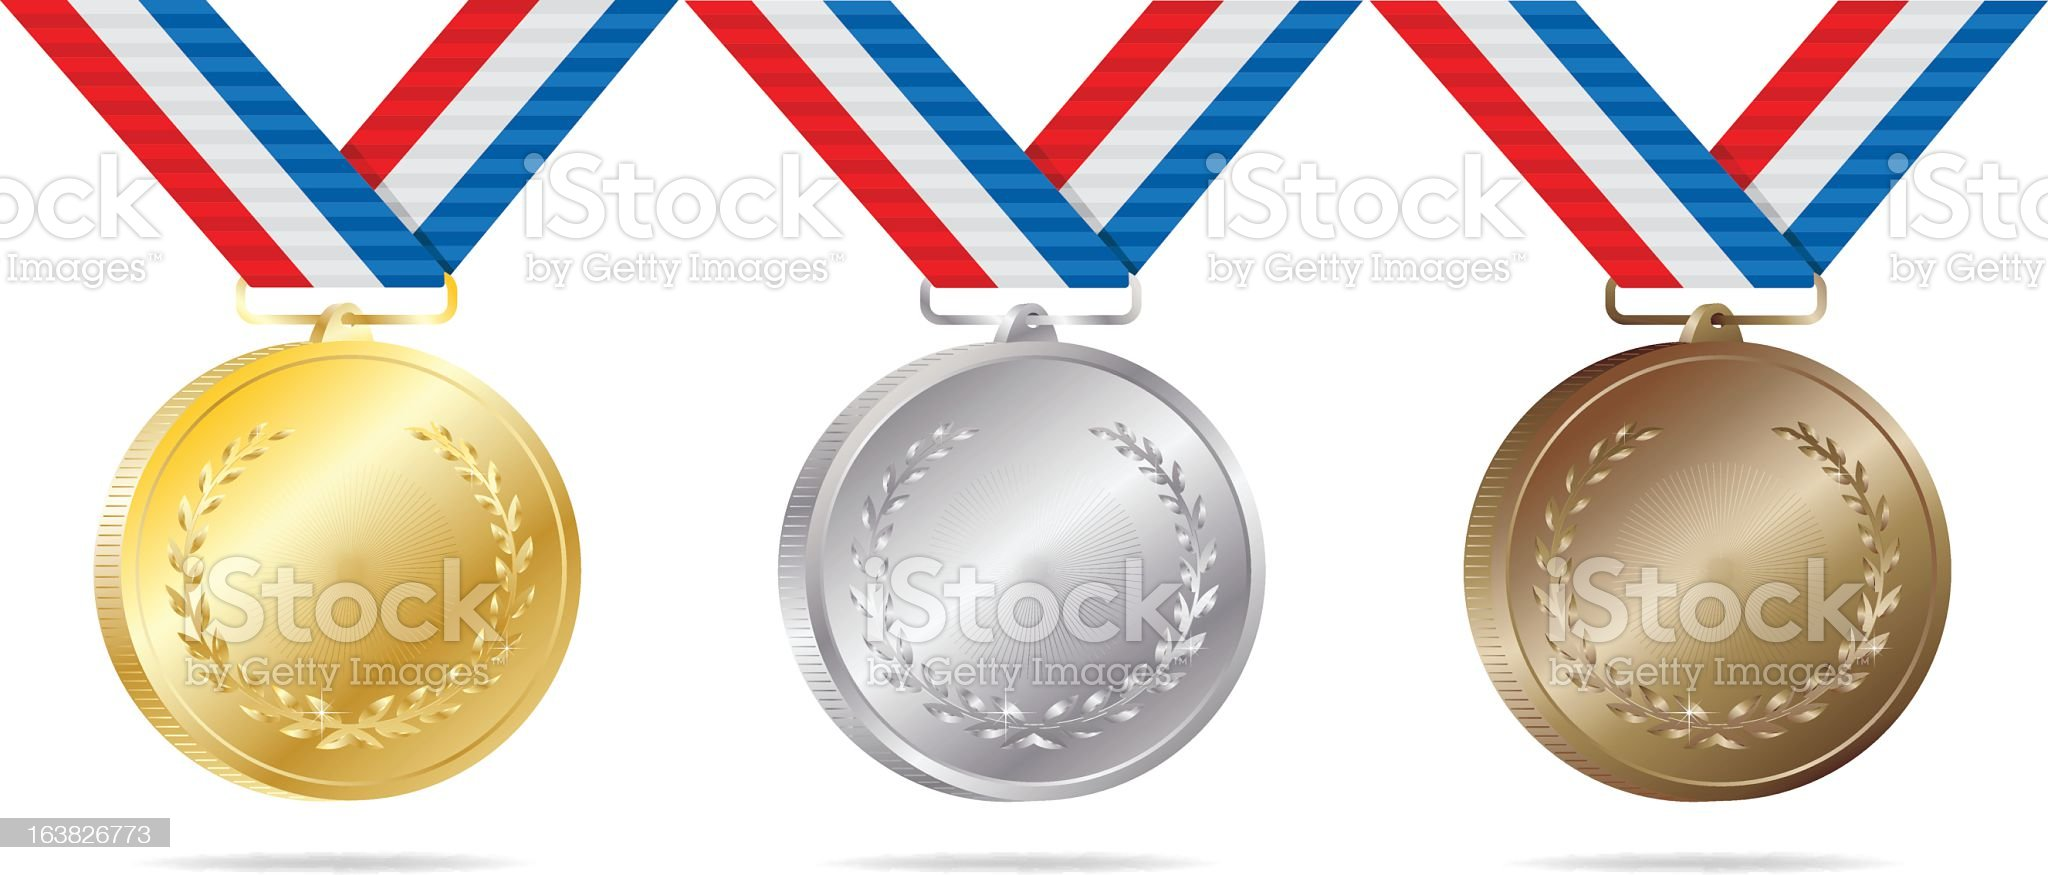 Gold silver and bronze medals on a white background royalty-free stock vector art